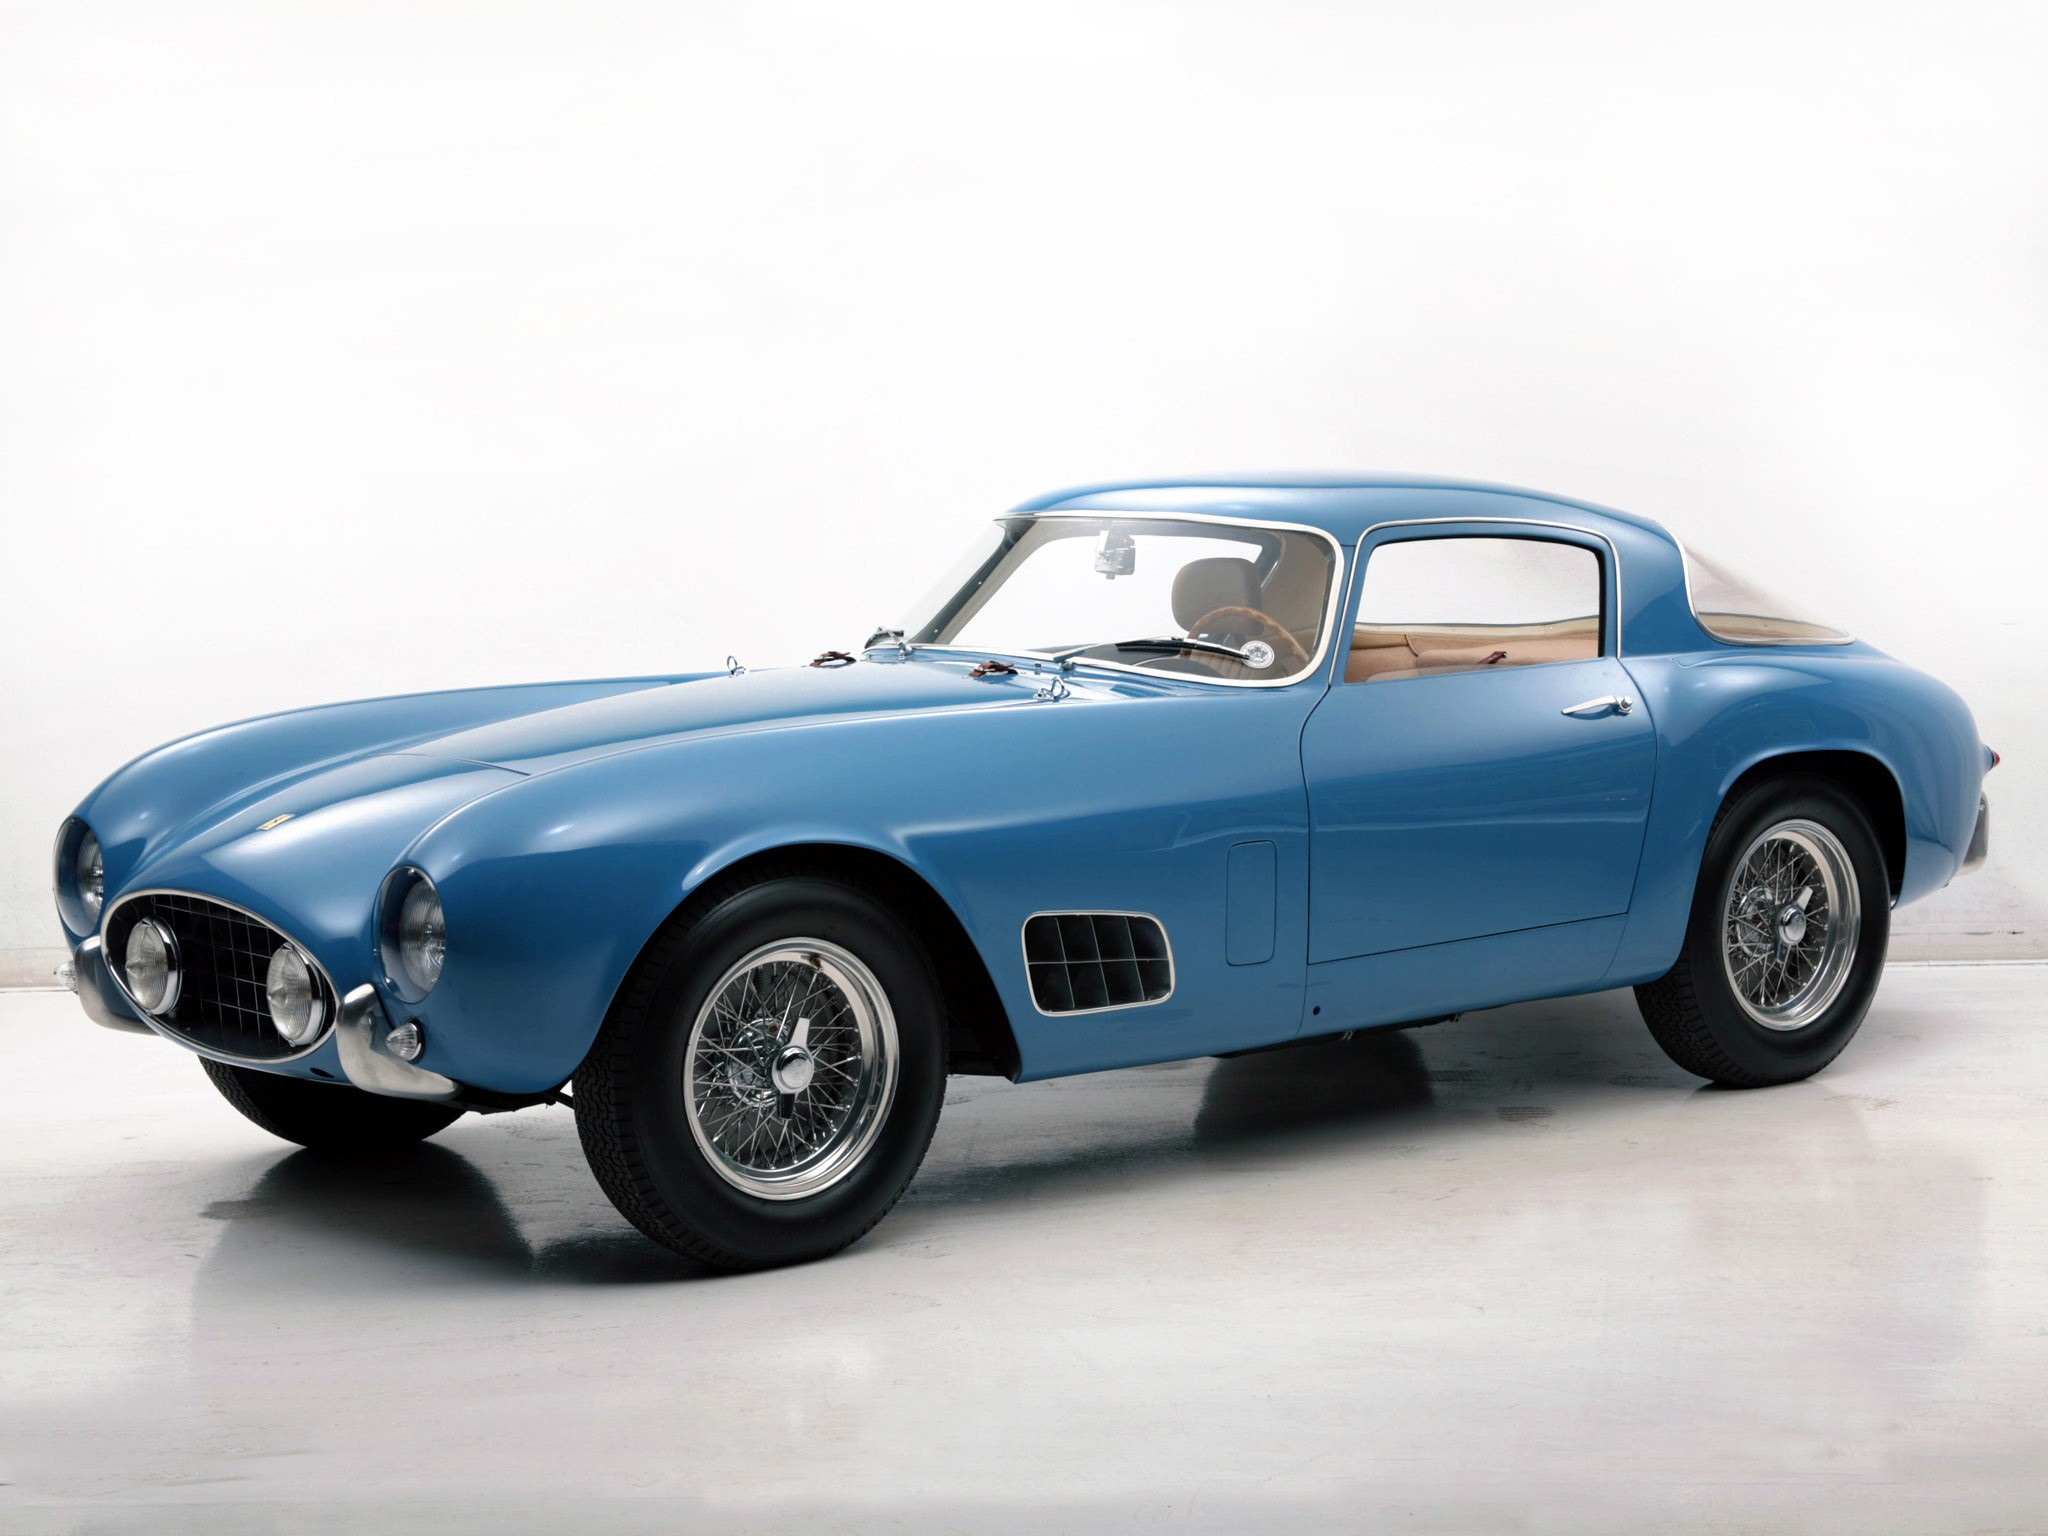 Ferrari 250 GT Berlinetta Tour de France 1956 - Avant